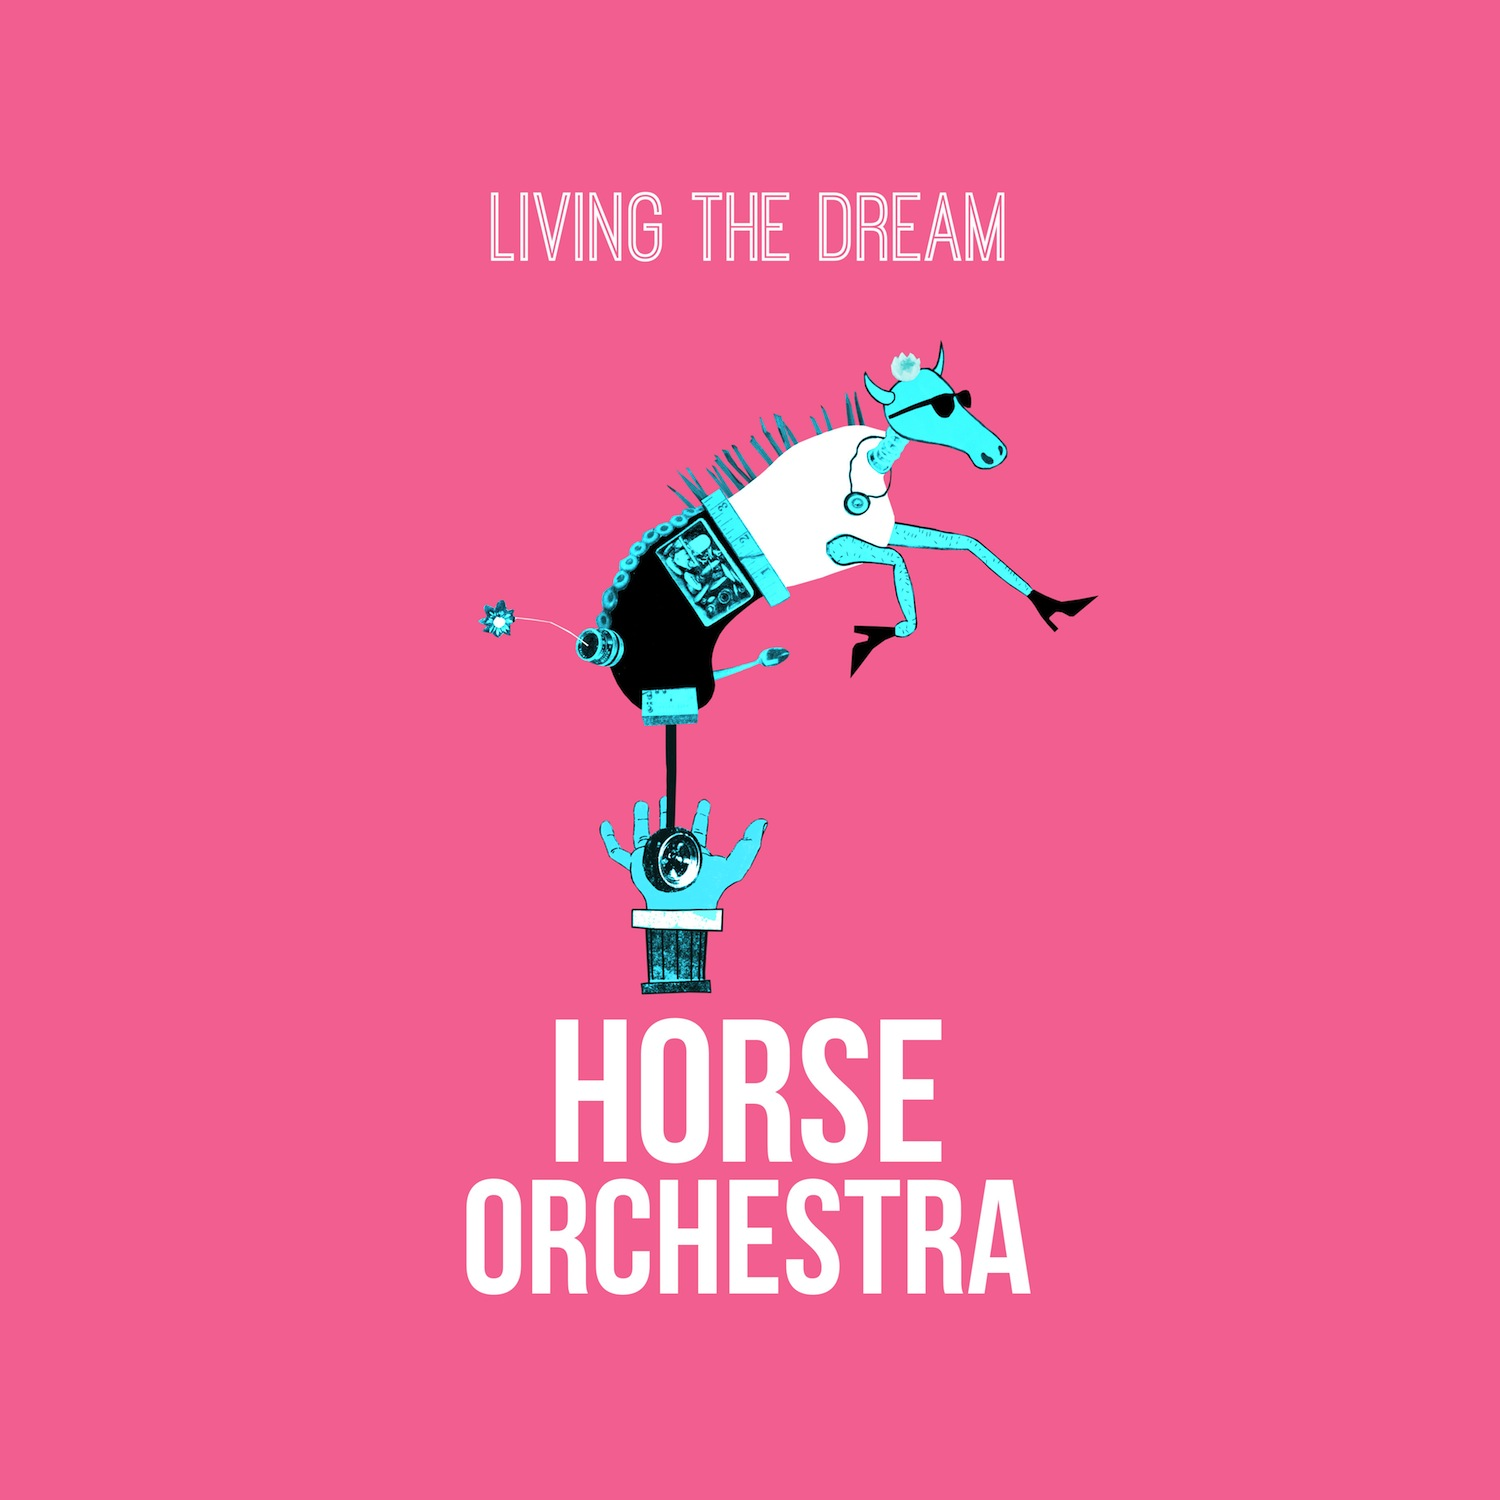 Horse Orchestra Living The Dream 1500x1500